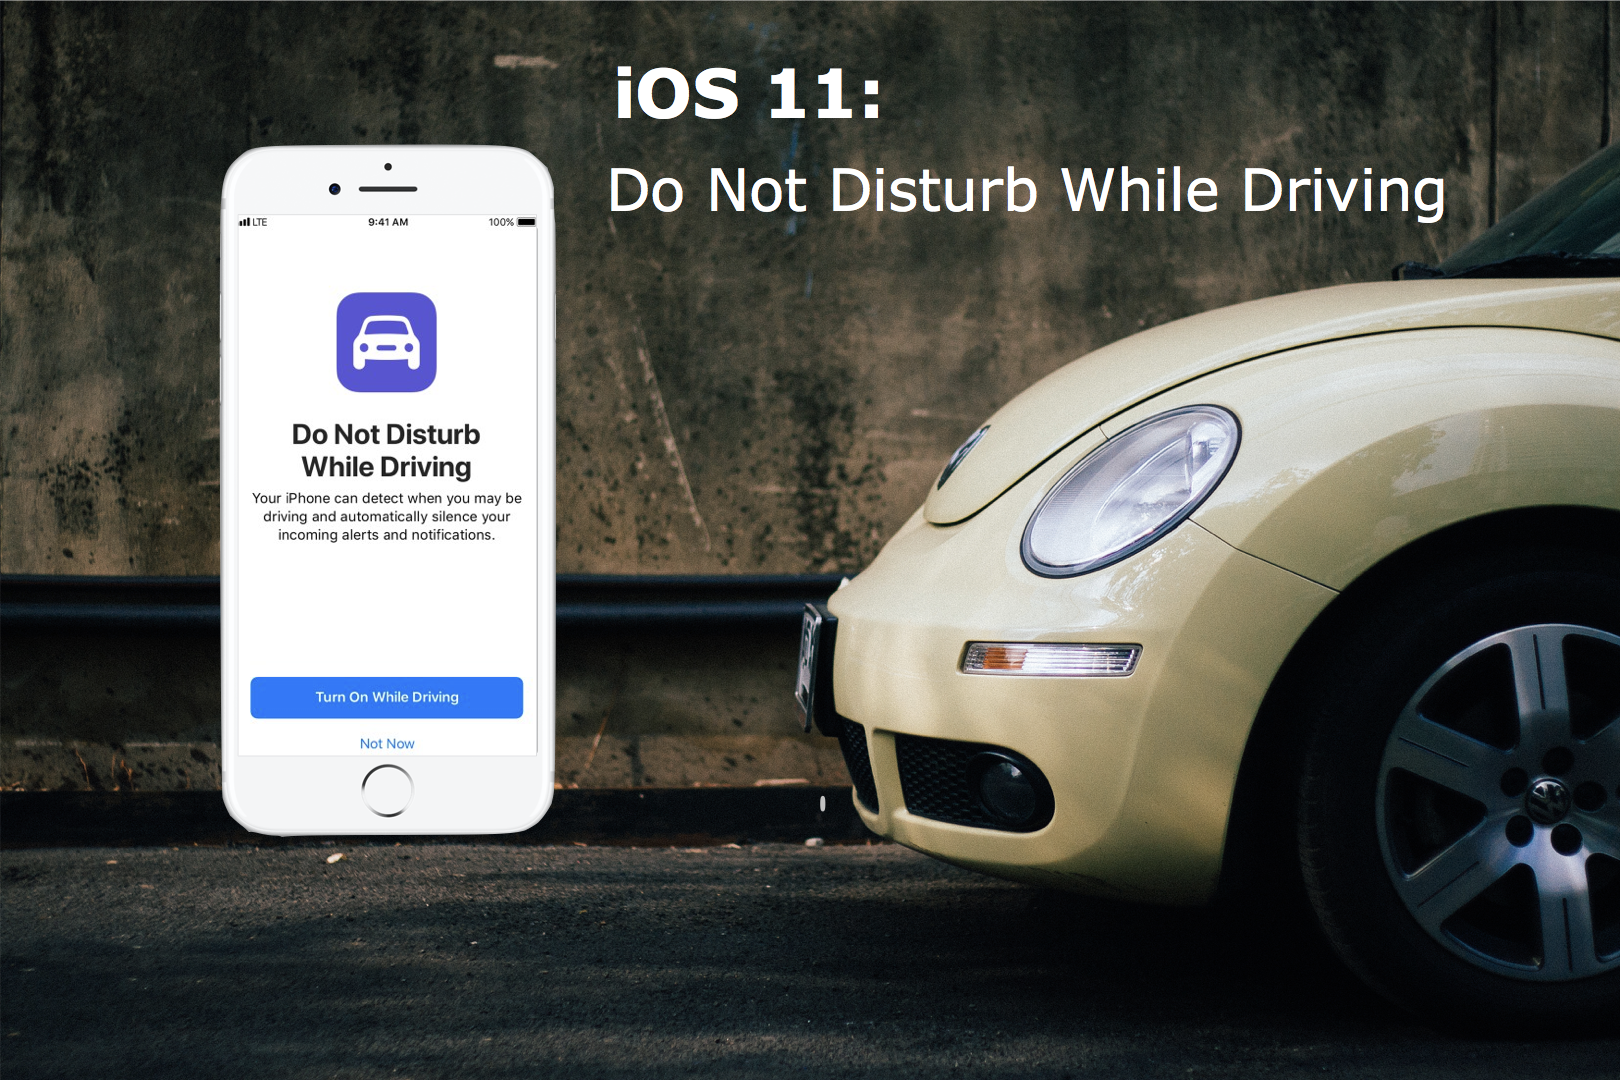 iOS 11 Key Feature: Do Not disturb While Driving. - No more texting and driving. Apple just got involved in our day to day driving with its newest feature coming soon. This feature has existed in other smartphones like Samsung but now it's your turn to put the phone down and focus on the road.Just like the Do Not Disturb feature, your iPhone will not be able to receive notifications while you're driving, unless connected to bluetooth. This update will auto-reply to the person who is trying to reach you saying, you will get back to them shortly. If it's an urgent matter you can bypass the feature by typing in